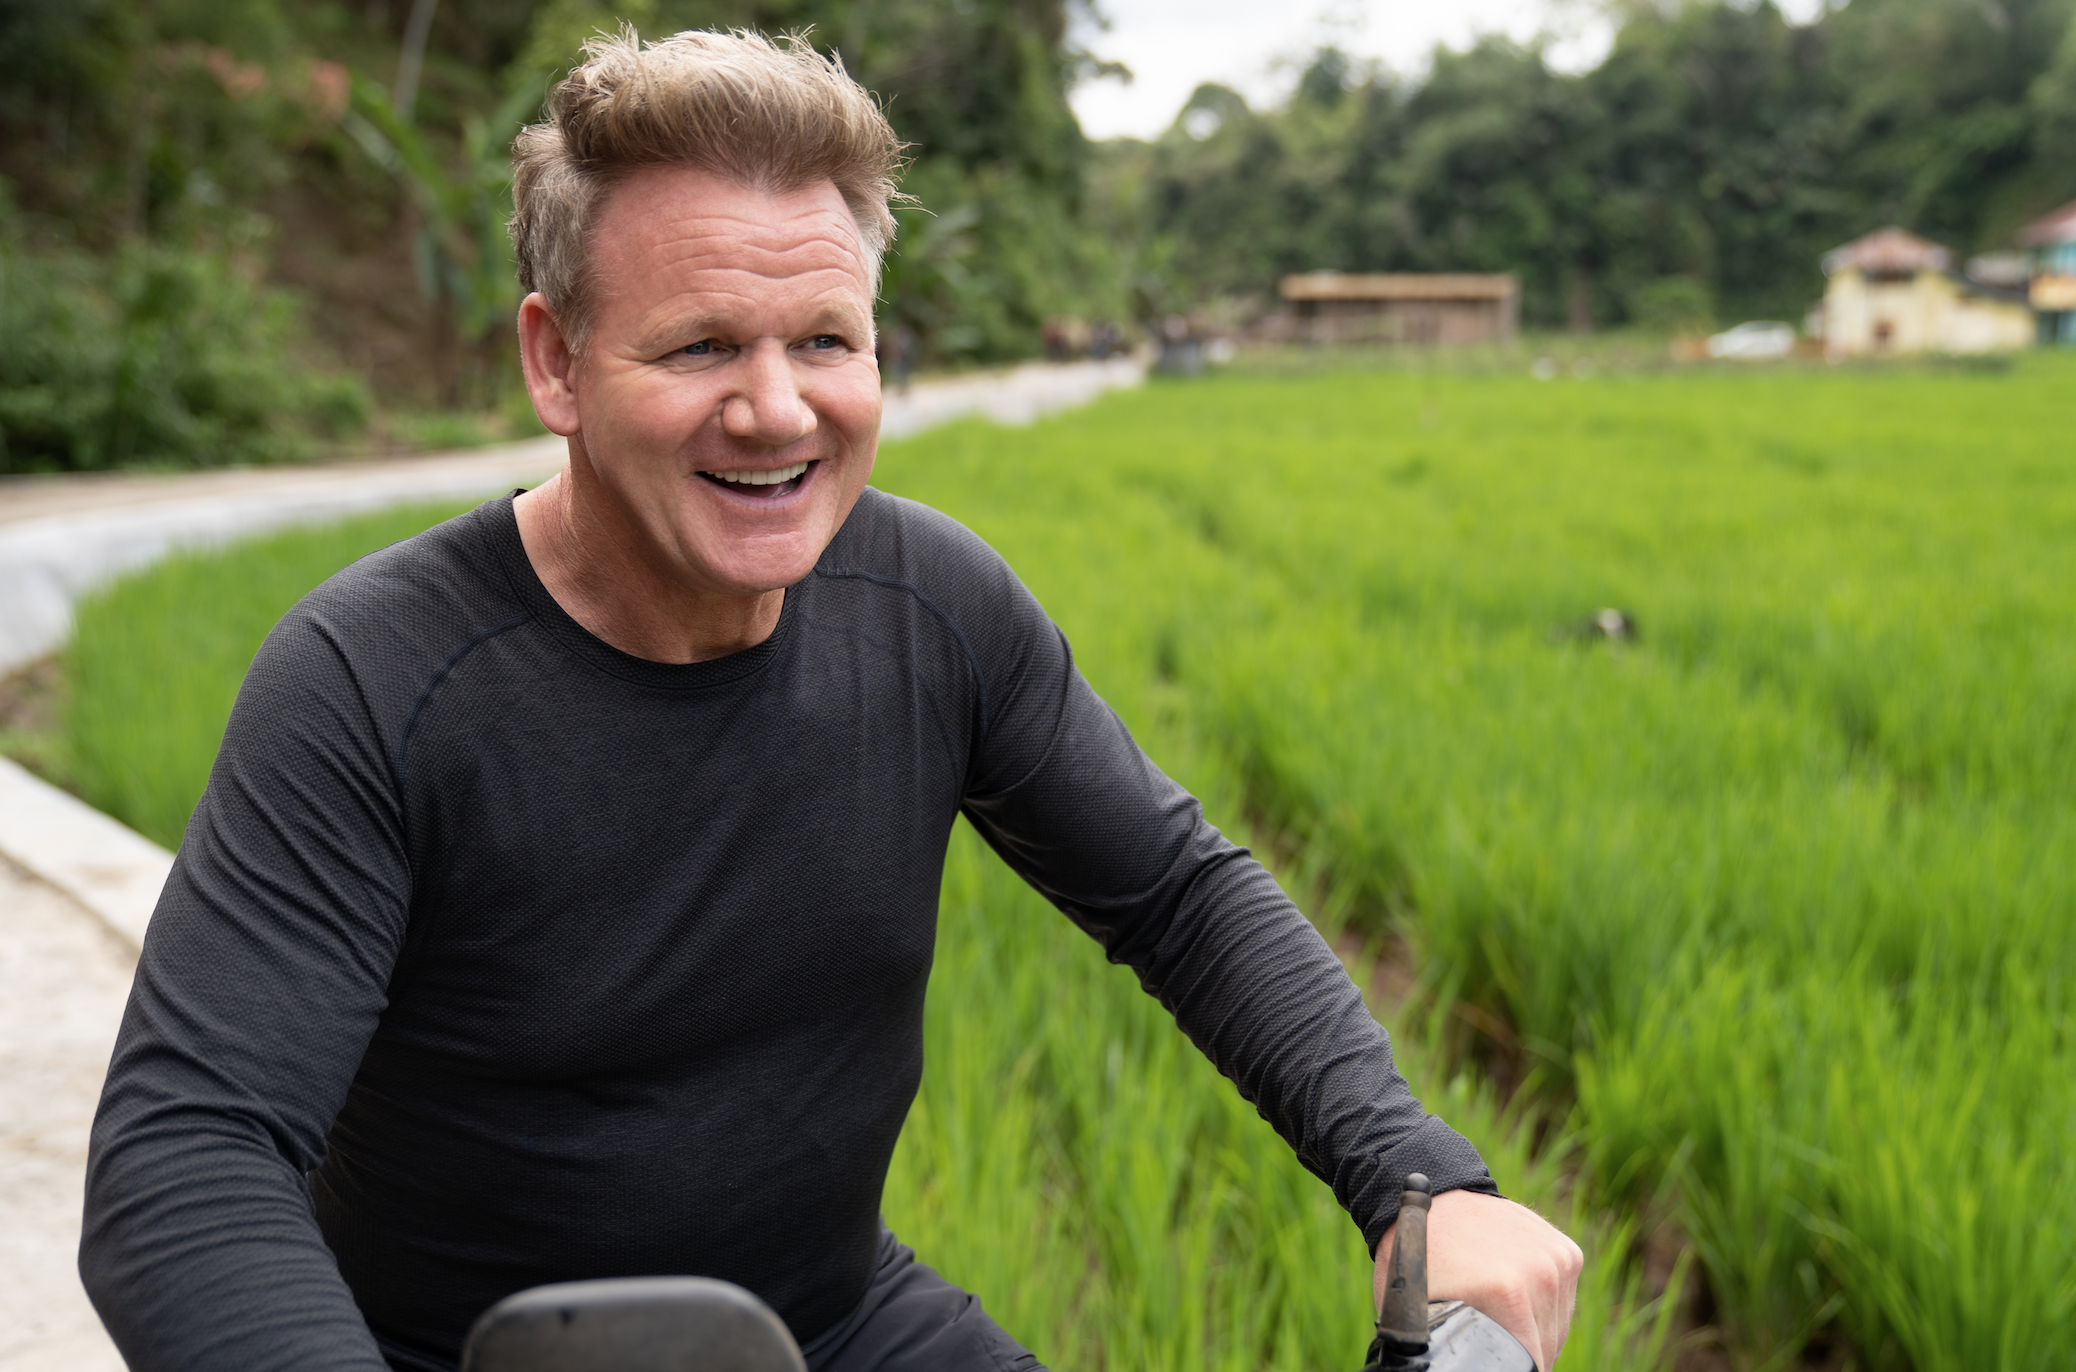 The Emmy-nominated TV personality said the ingredients sold in Indonesia's wet markets were stuff that any top-flight kitchen would fight to get their hands on. — Picture courtesy of National Geographic